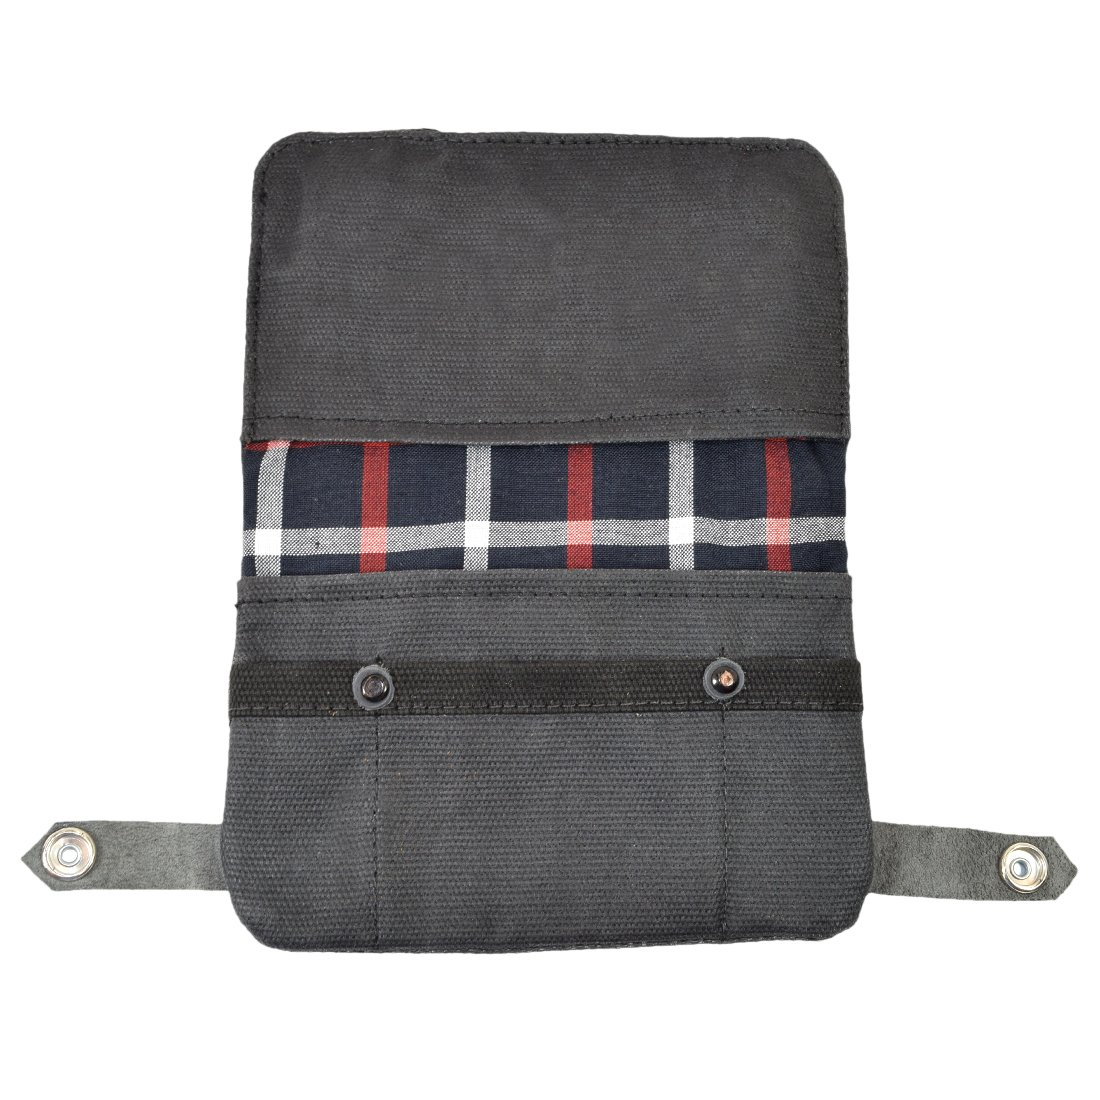 Amazon.com: Waxed Canvas Tobacco Pouch, Smoking, Filters, Herbs ...